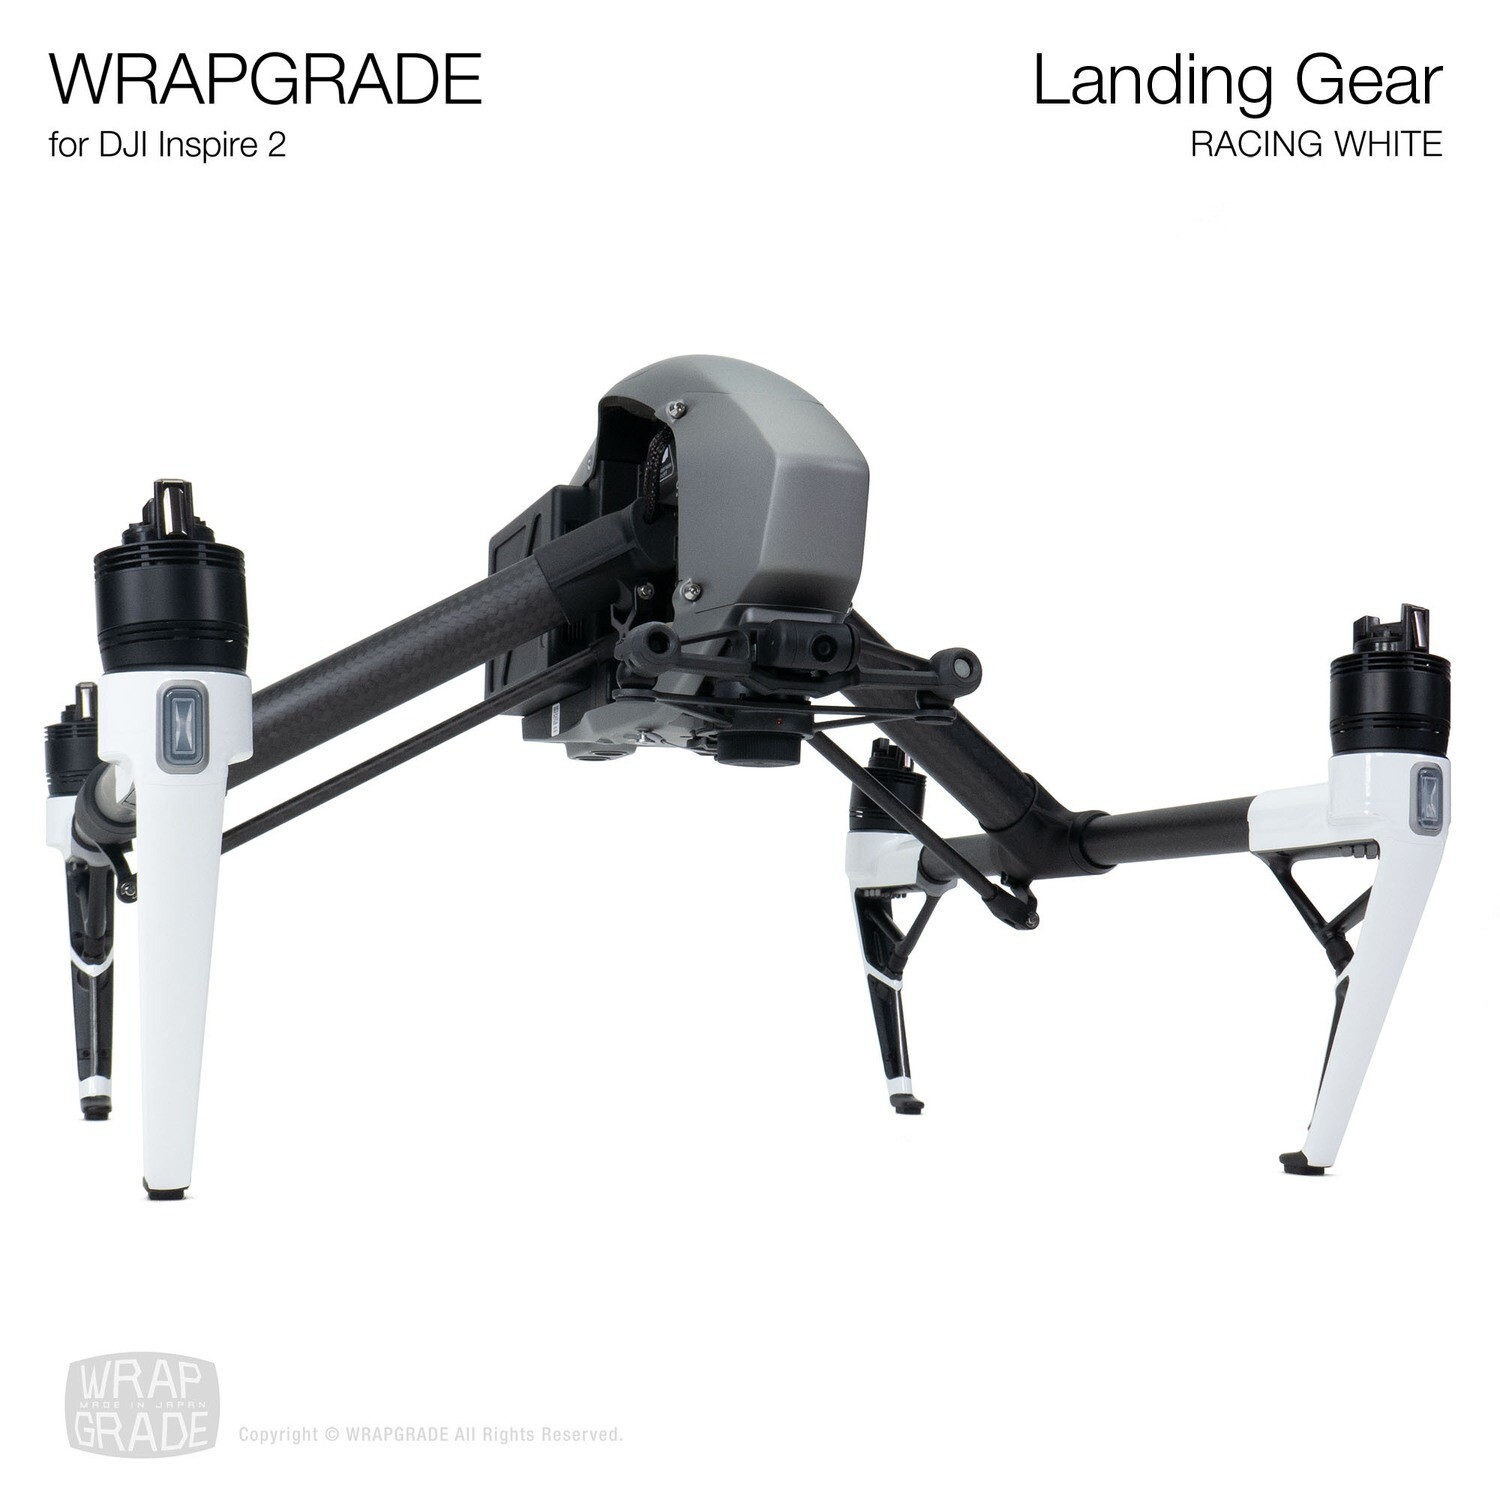 WRAPGRADE for DJI Inspire 2 | Landing Gear [21 colors]